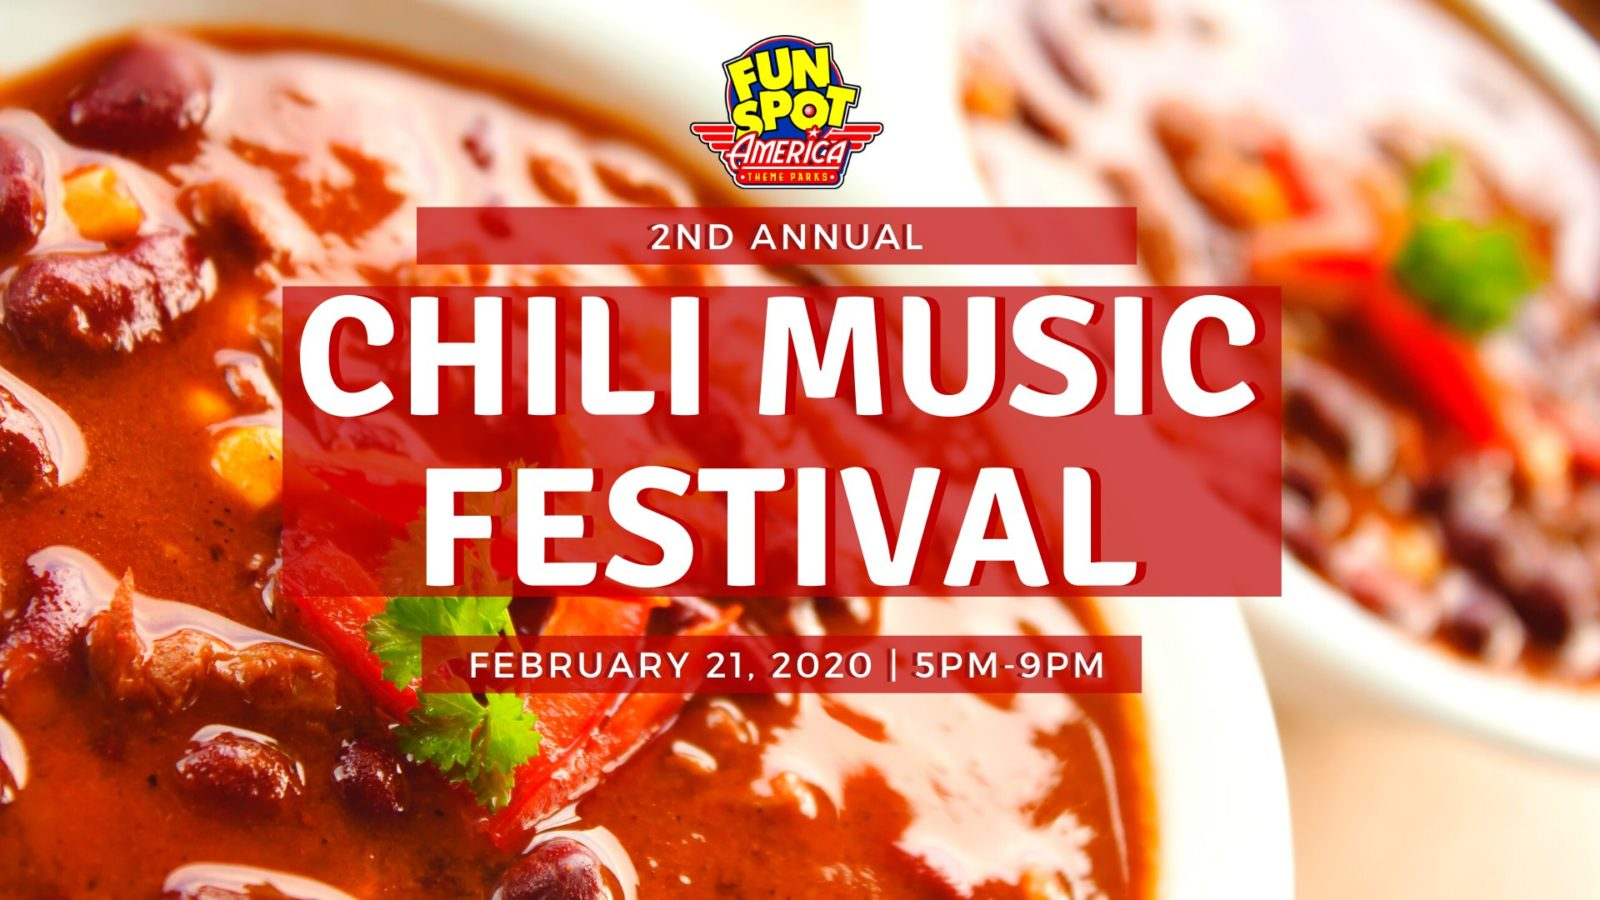 On the Go in Orlando - feb 21 2020 - Fun Spot America Chili Music Festival